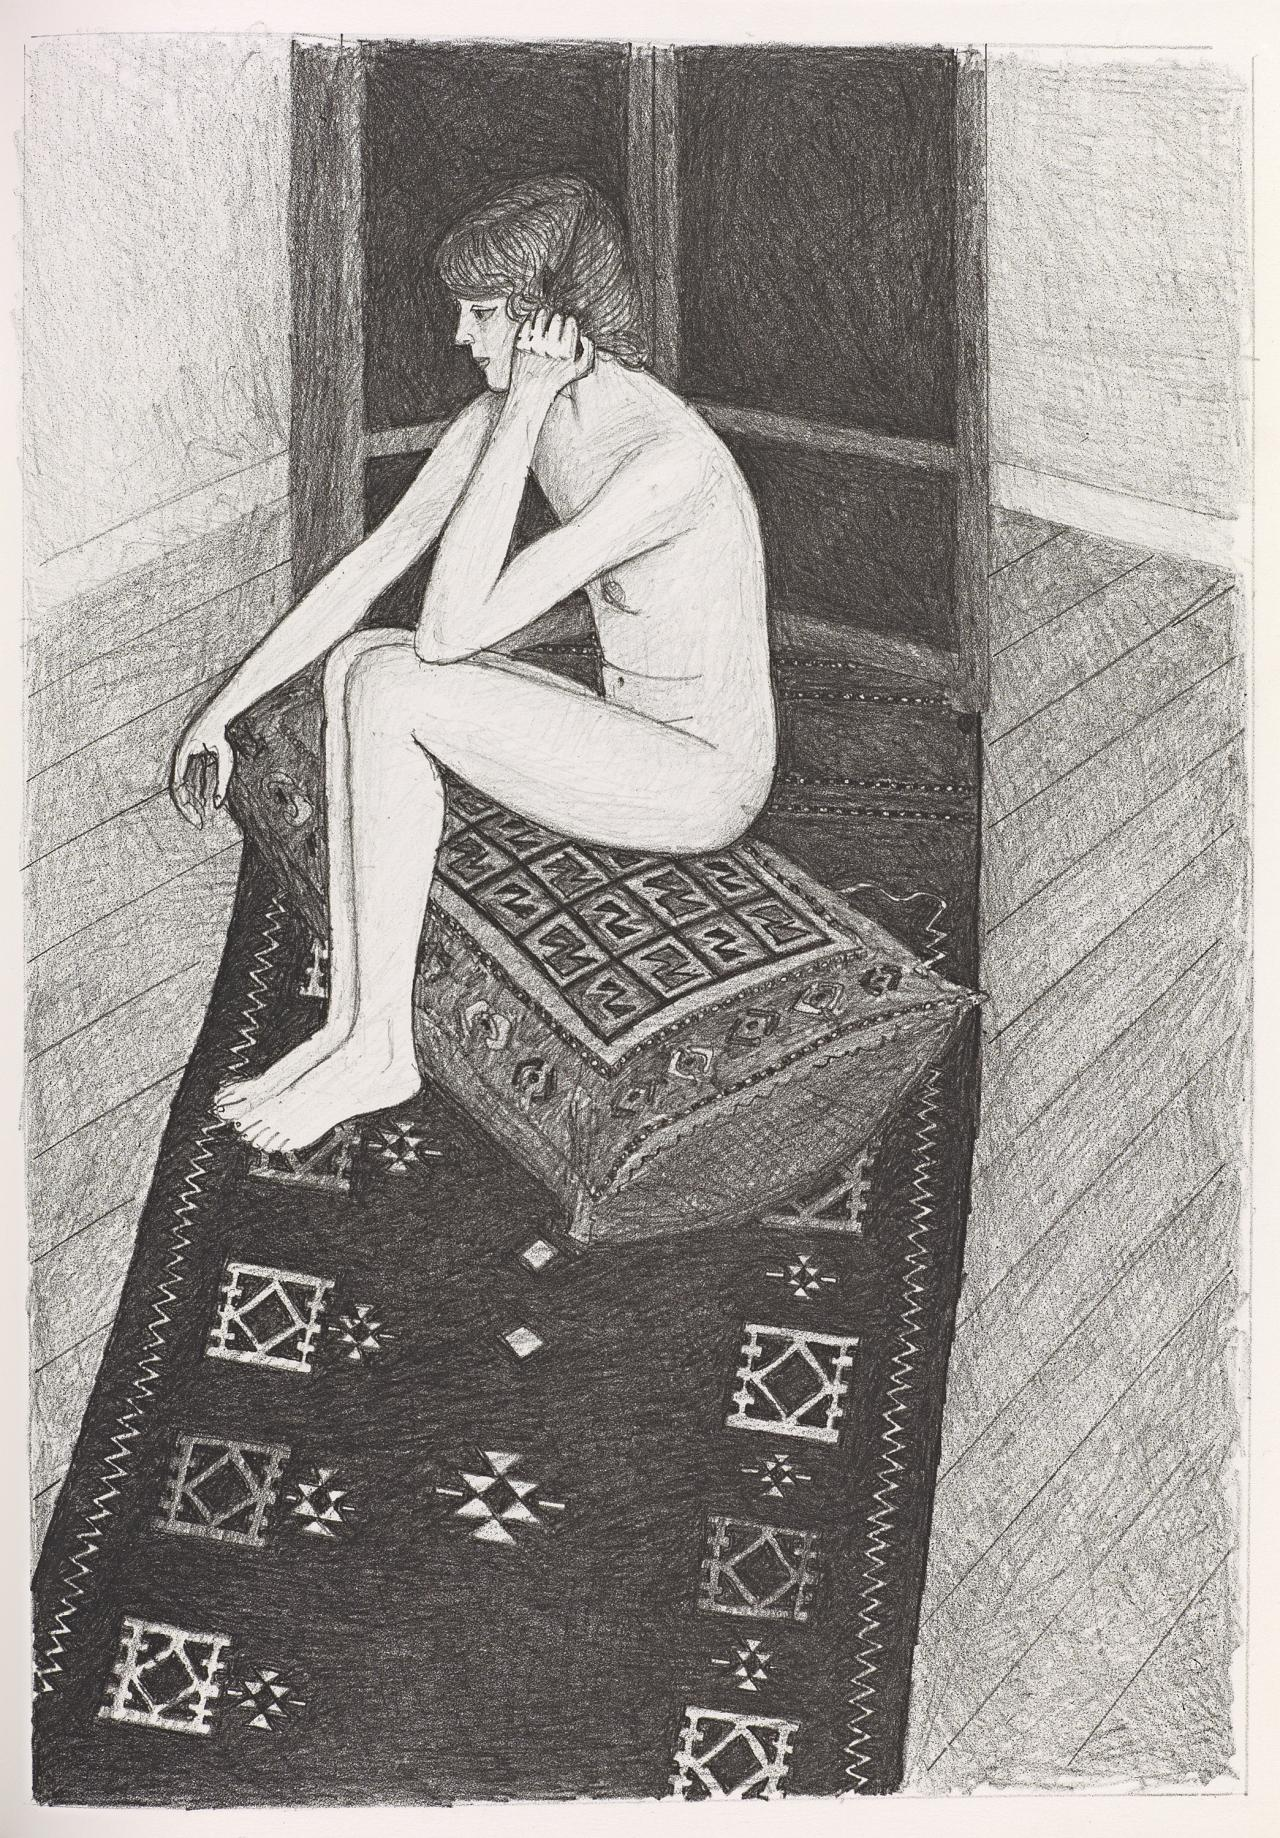 (Nude seated on cushion, resting head on hand, on patterned rug)